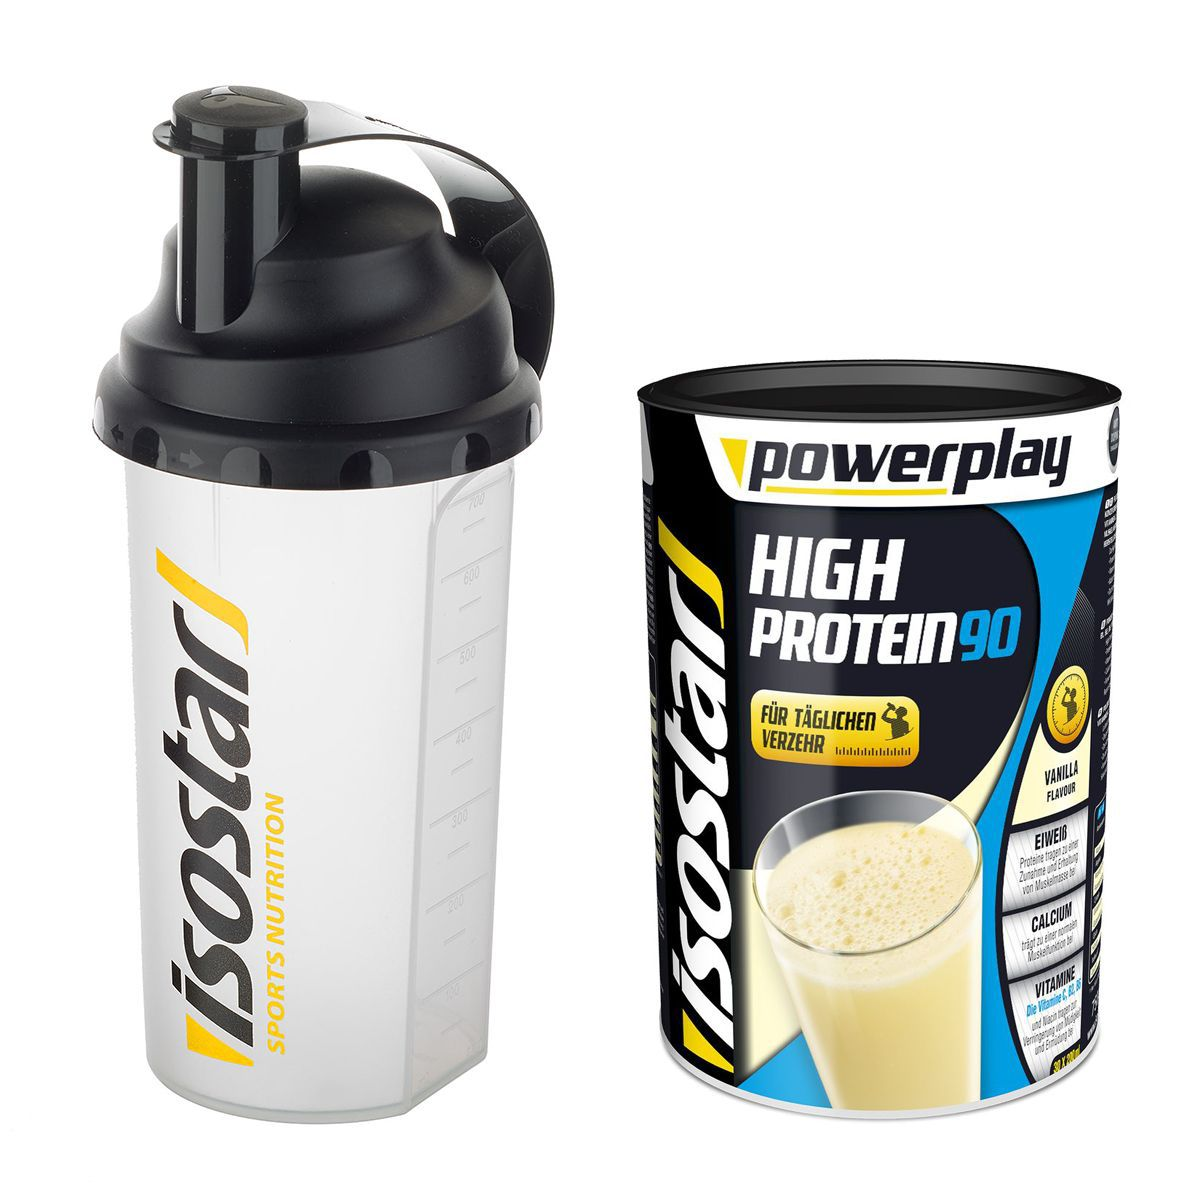 Isostar High Protein 90 set incl. shaker | Shaker